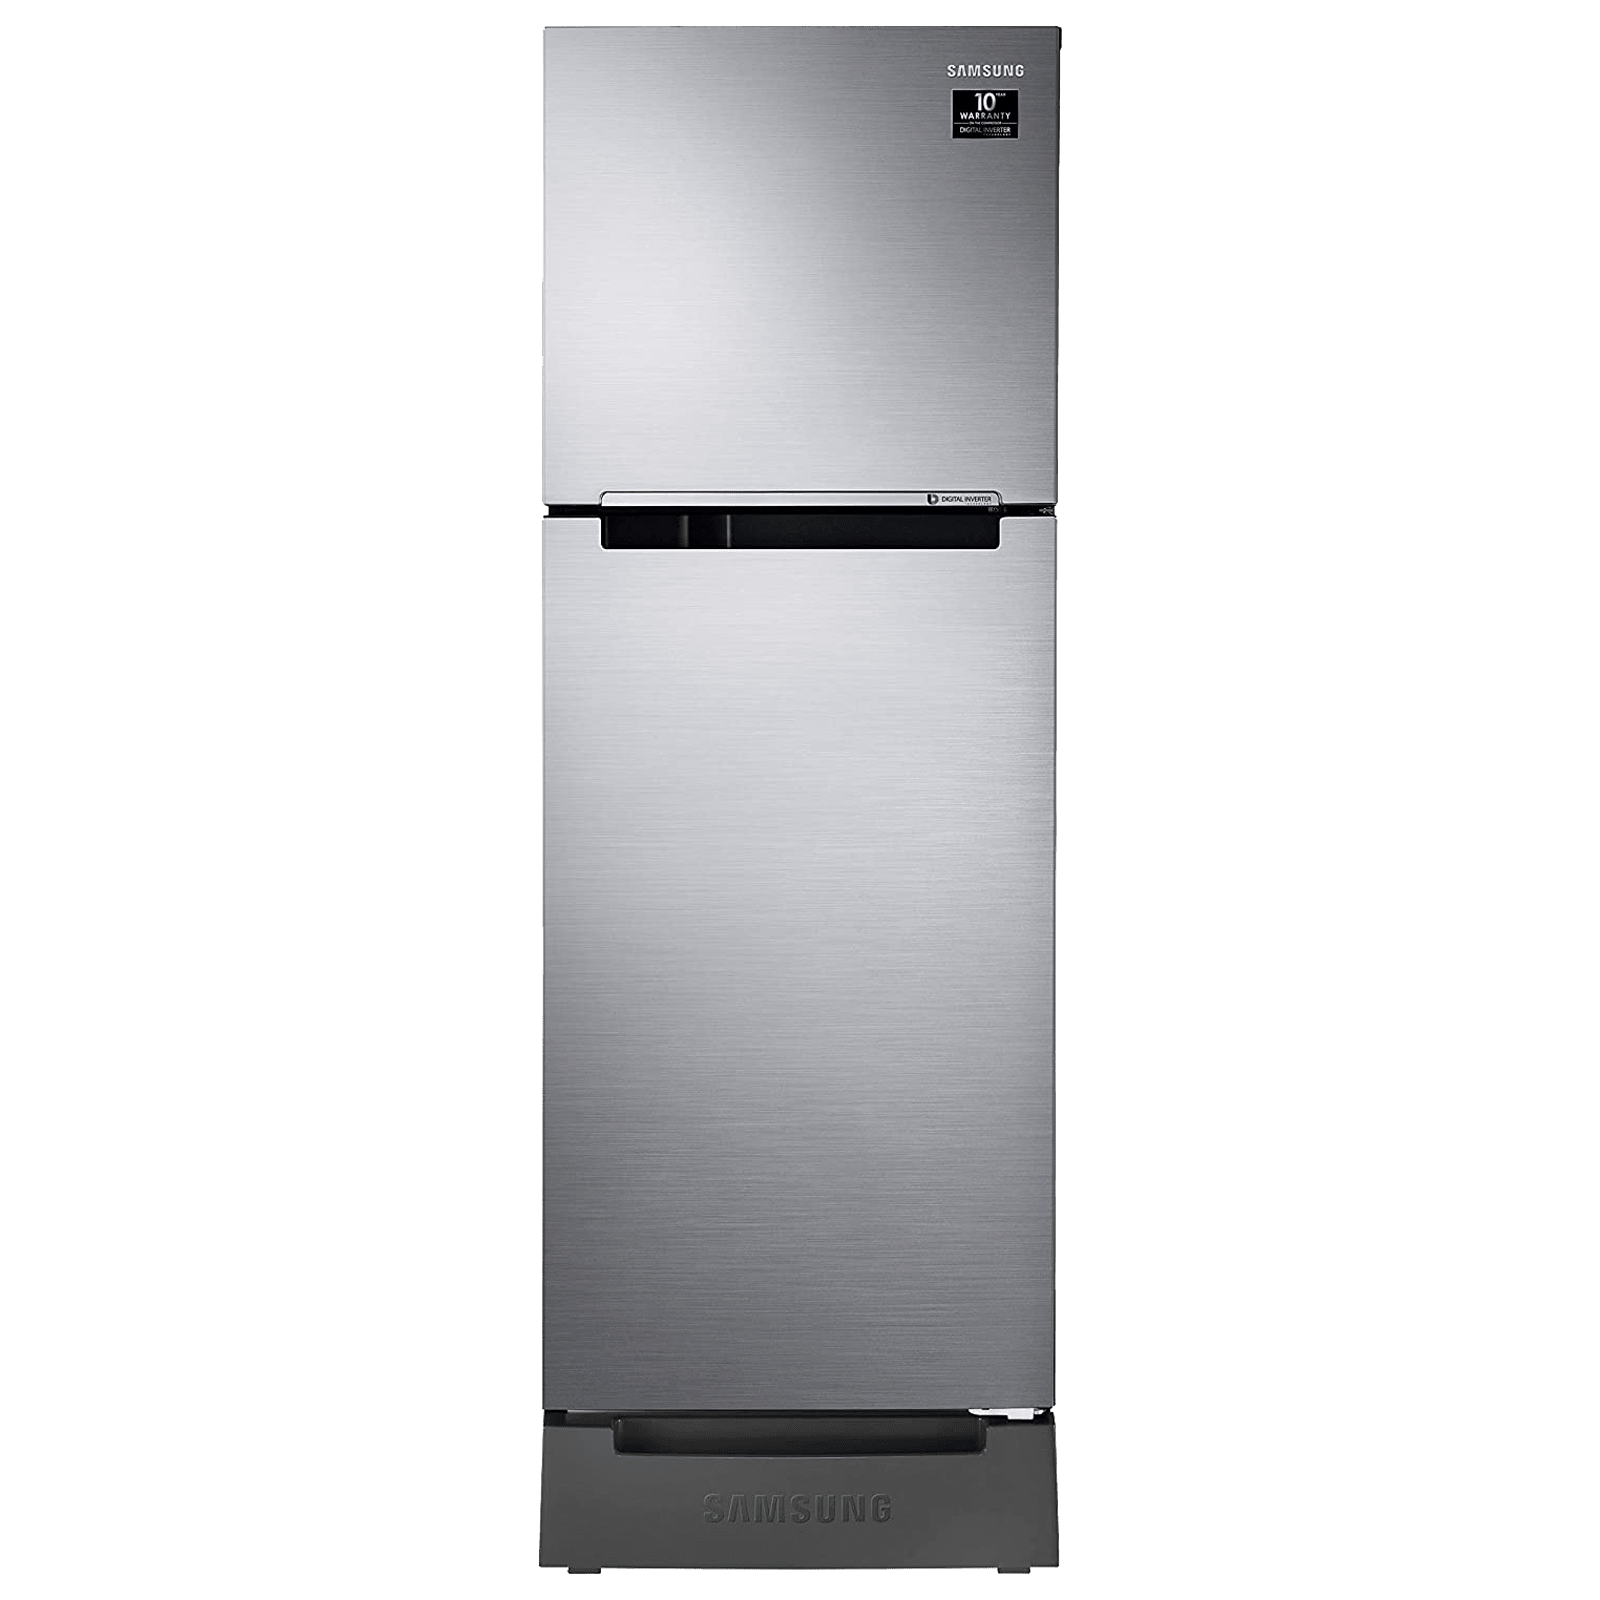 Samsung 253 Litres 2 Star Frost Free Digital Inverter Double Door Refrigerator (Base Stand Drawer, RT28T3122S9/HL, Refined Inox)